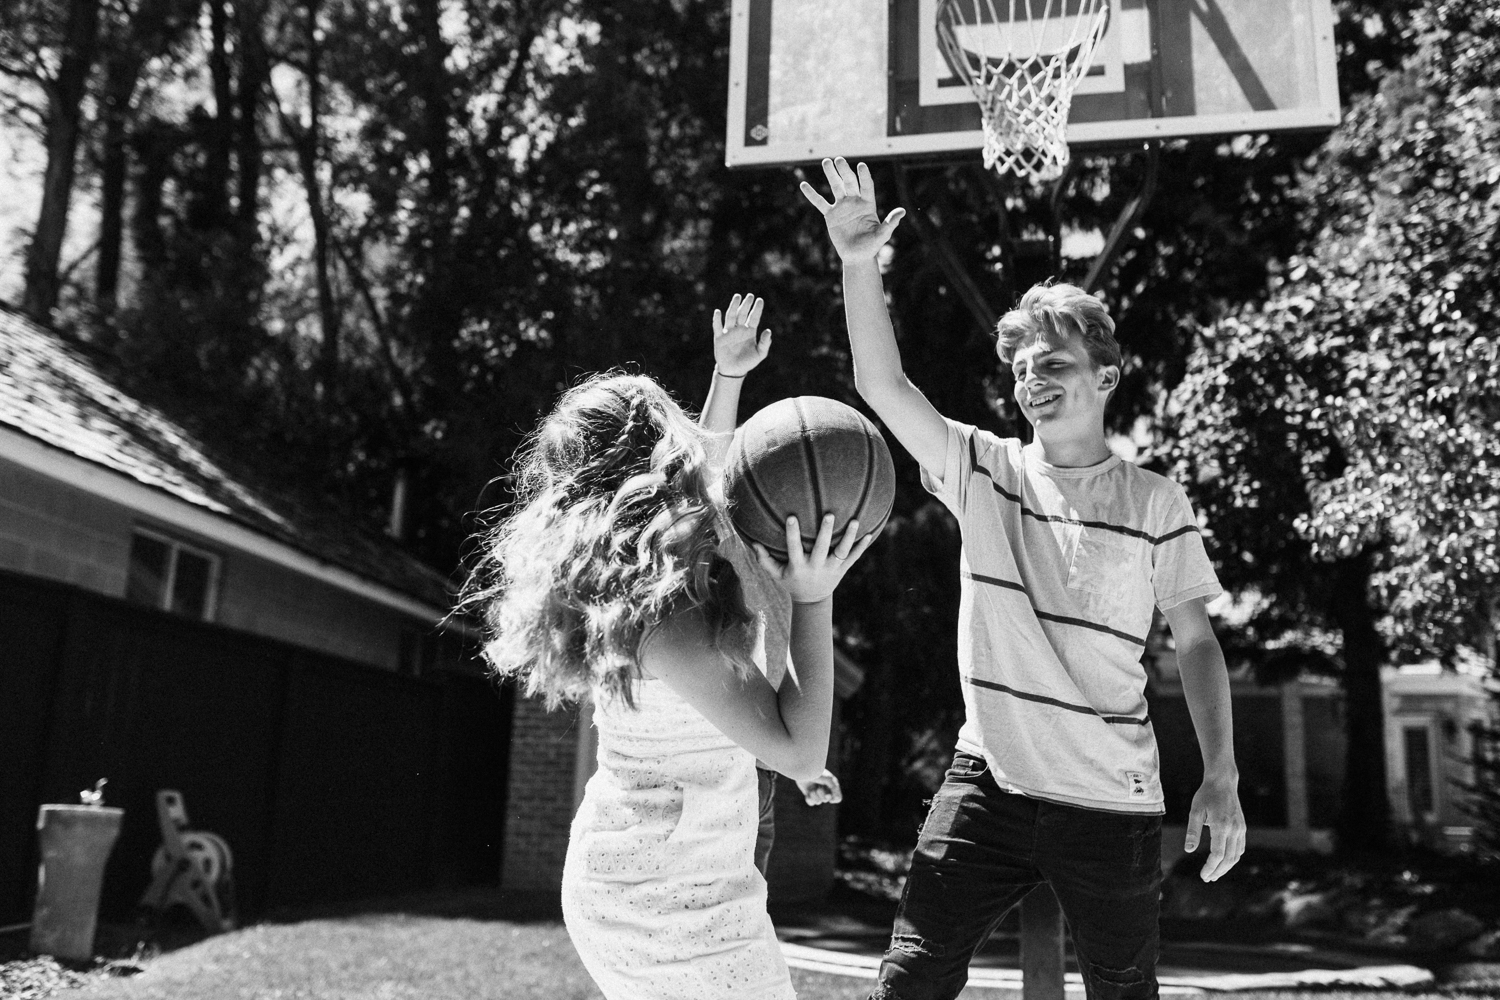 candid-photo-of-boy-and-girl-playing-basketball-during-at-home-photo-session-with-jenfairchild-photography-slc-ut